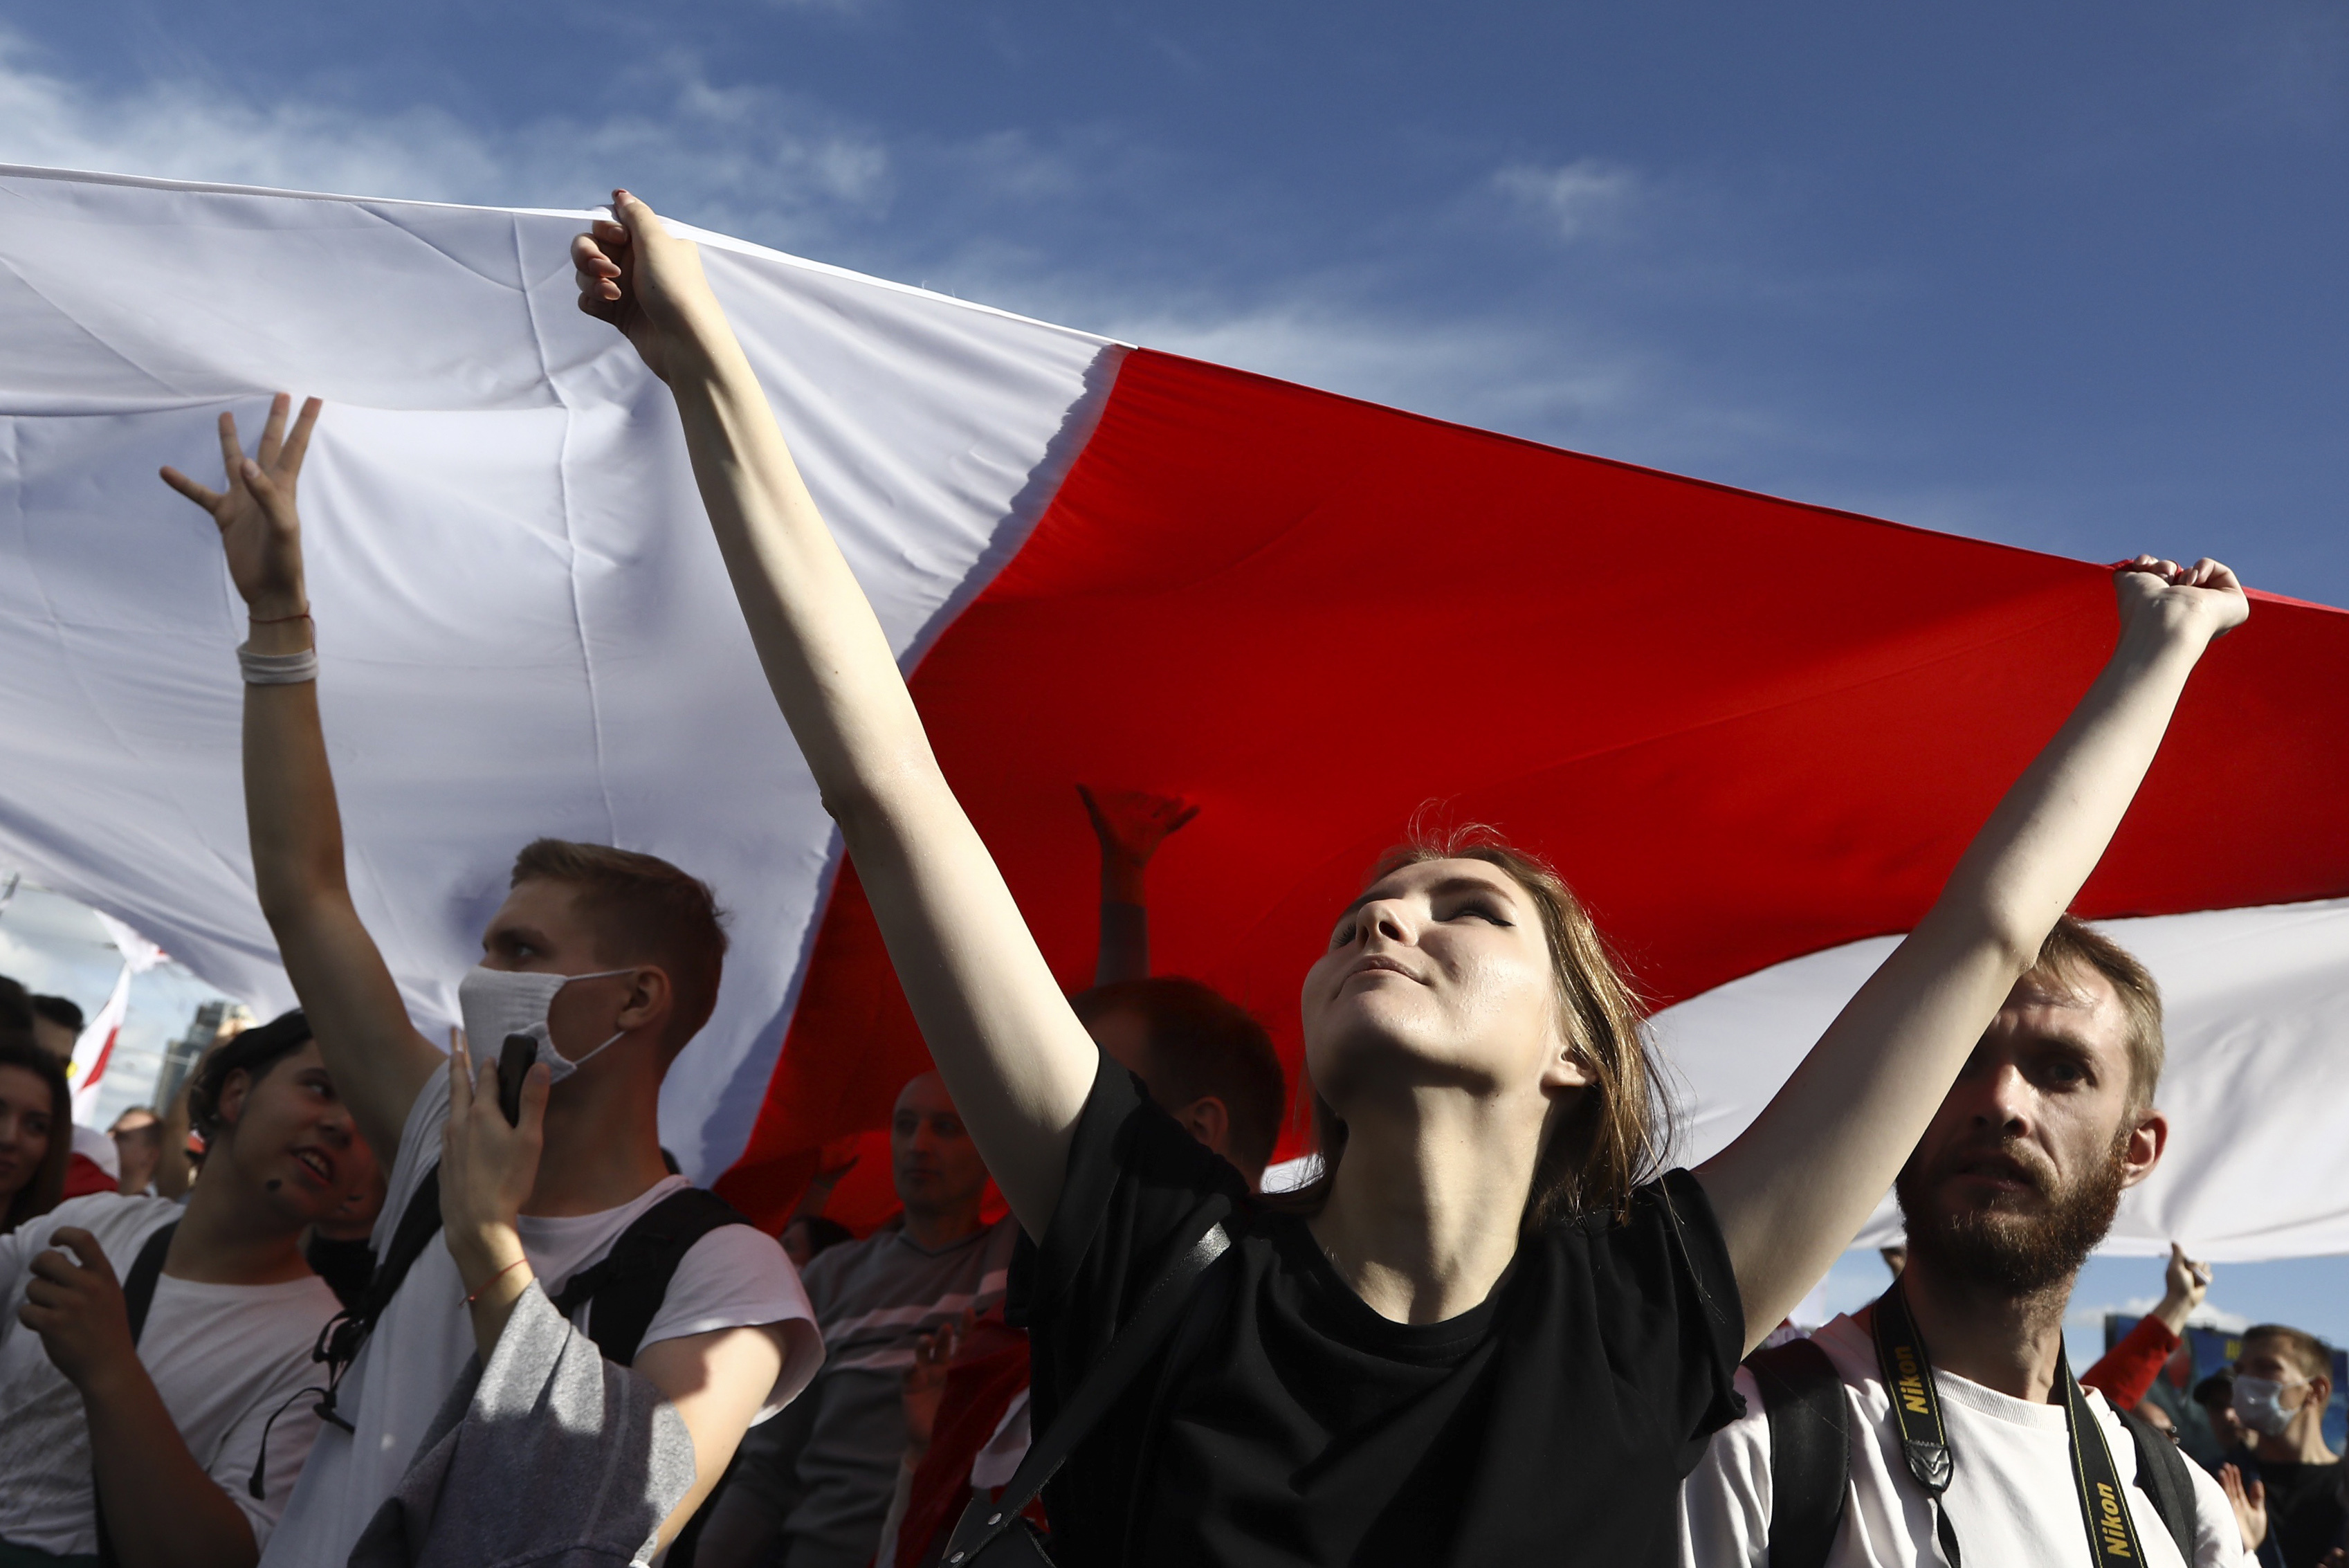 Protesters carry a giant old Belarusian national flag during a Belarusian opposition supporters' rally protesting the official presidential election results in Minsk, Belarus, Sunday, Sept. 13, 2020.